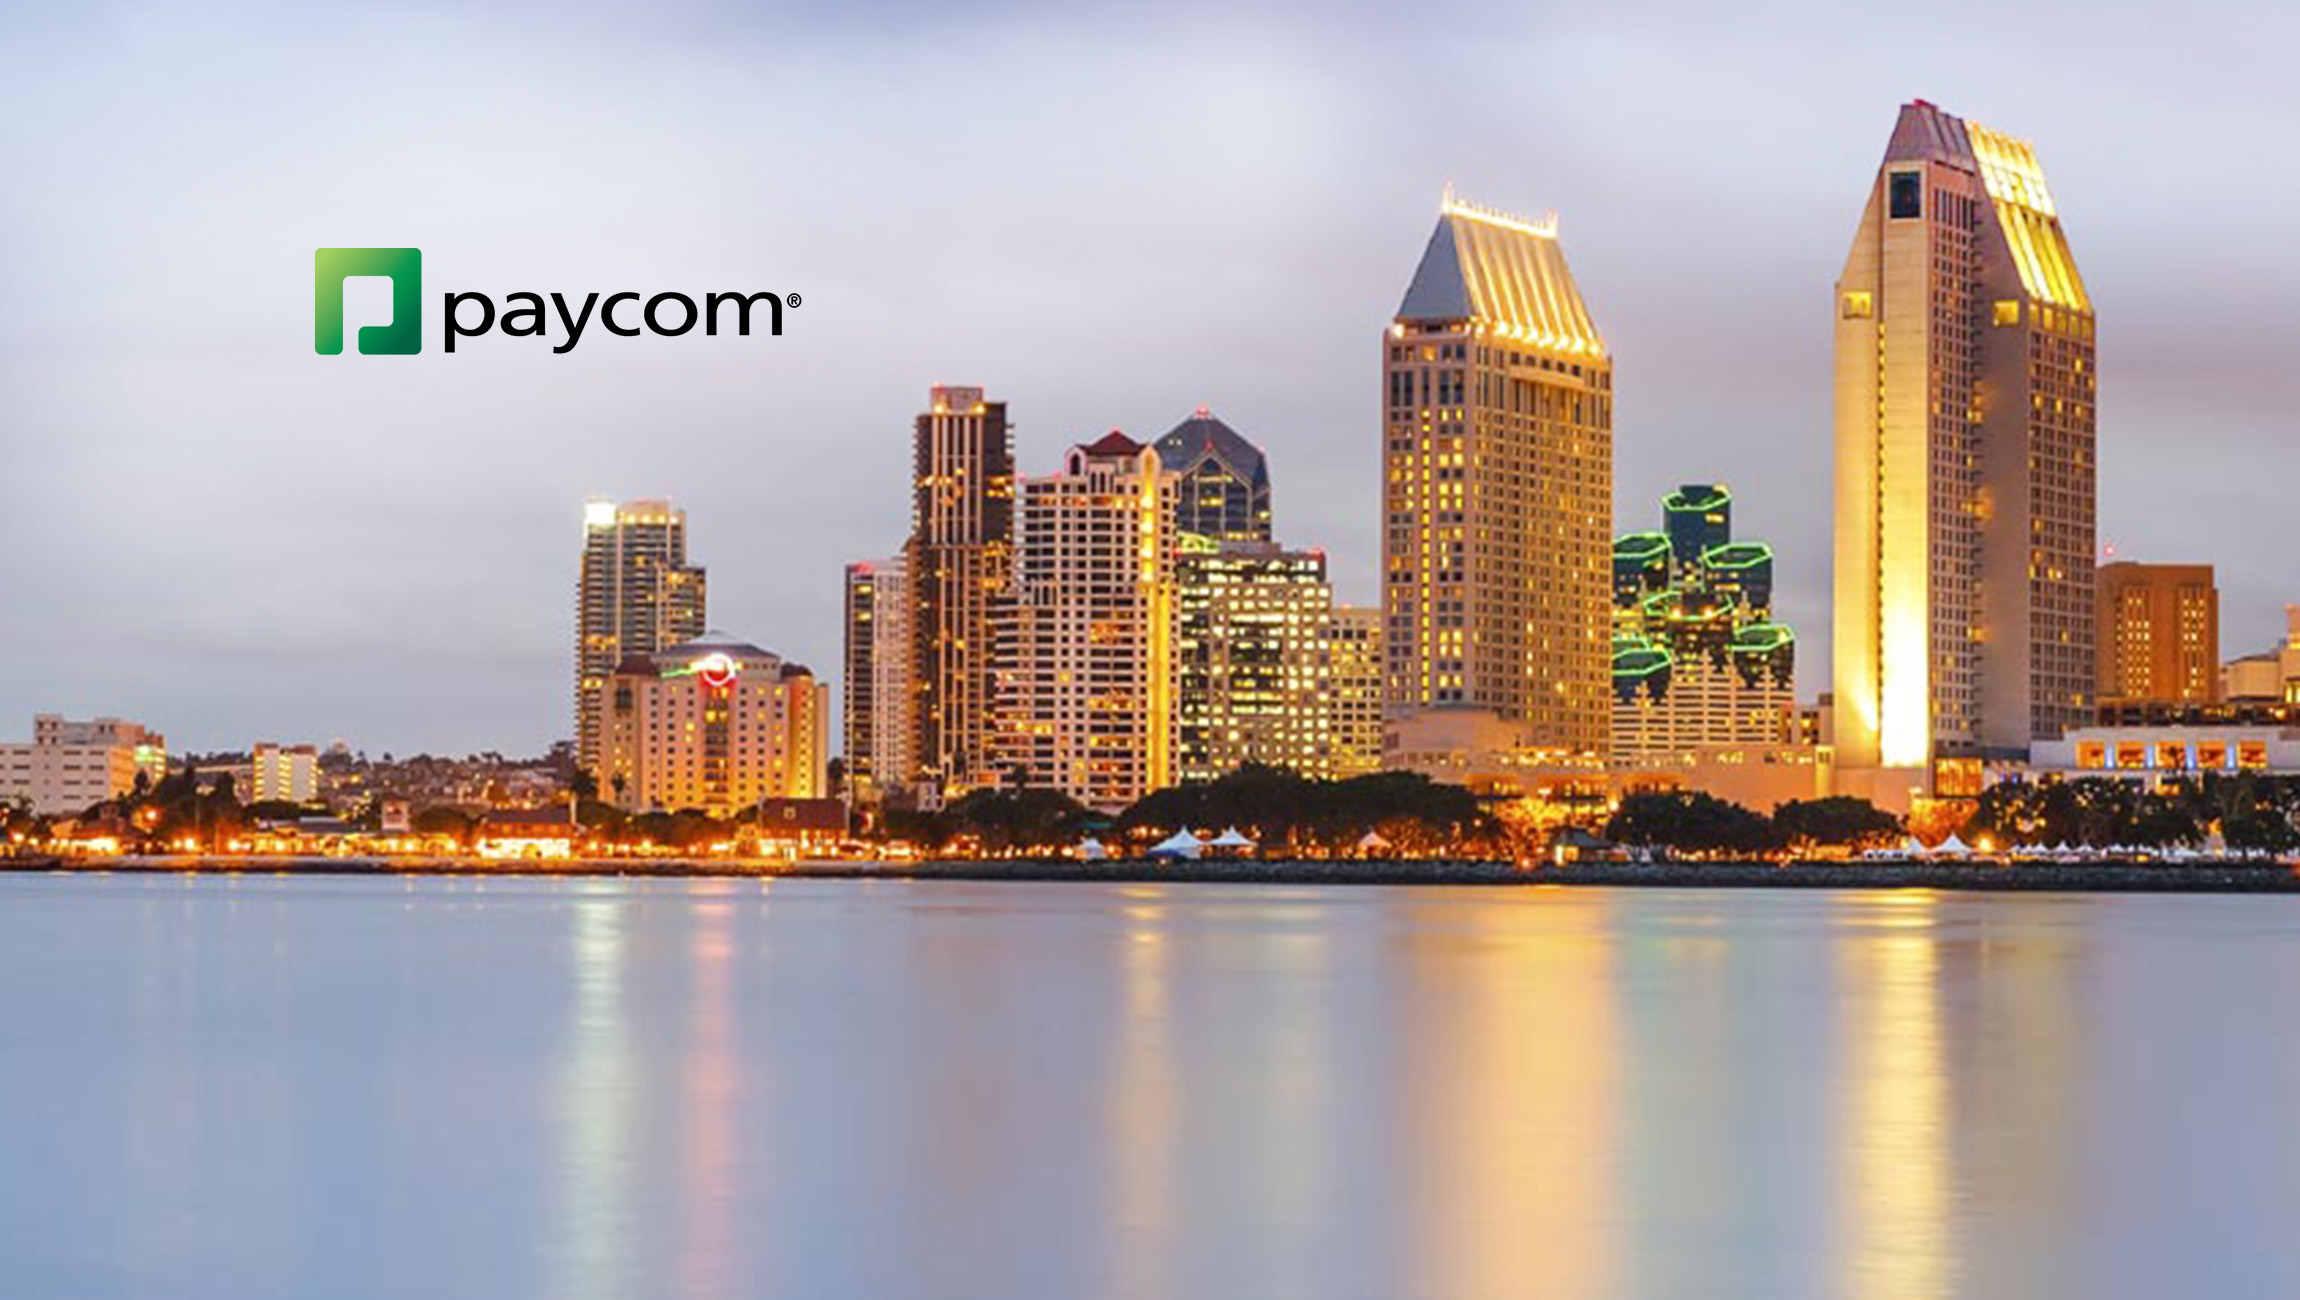 Paycom Software Announces San Diego as Newest Office